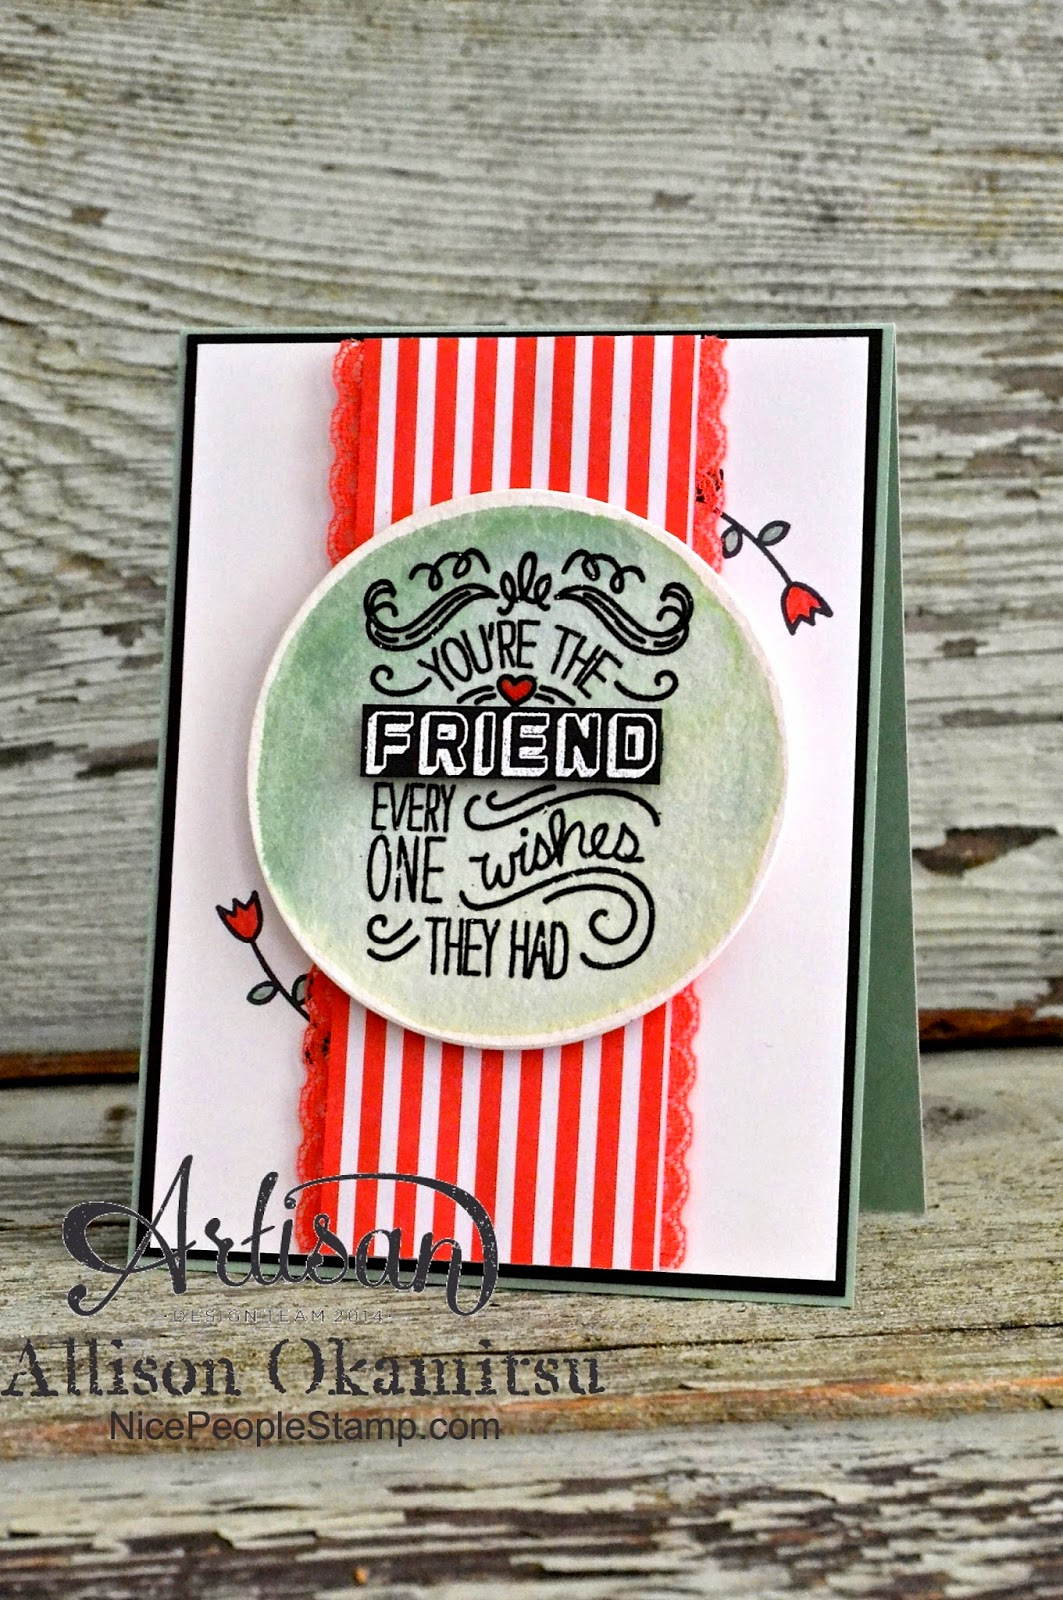 http://nicepeoplestamp.blogspot.com/2015/05/friendly-wishes-w-mint-macaron.html